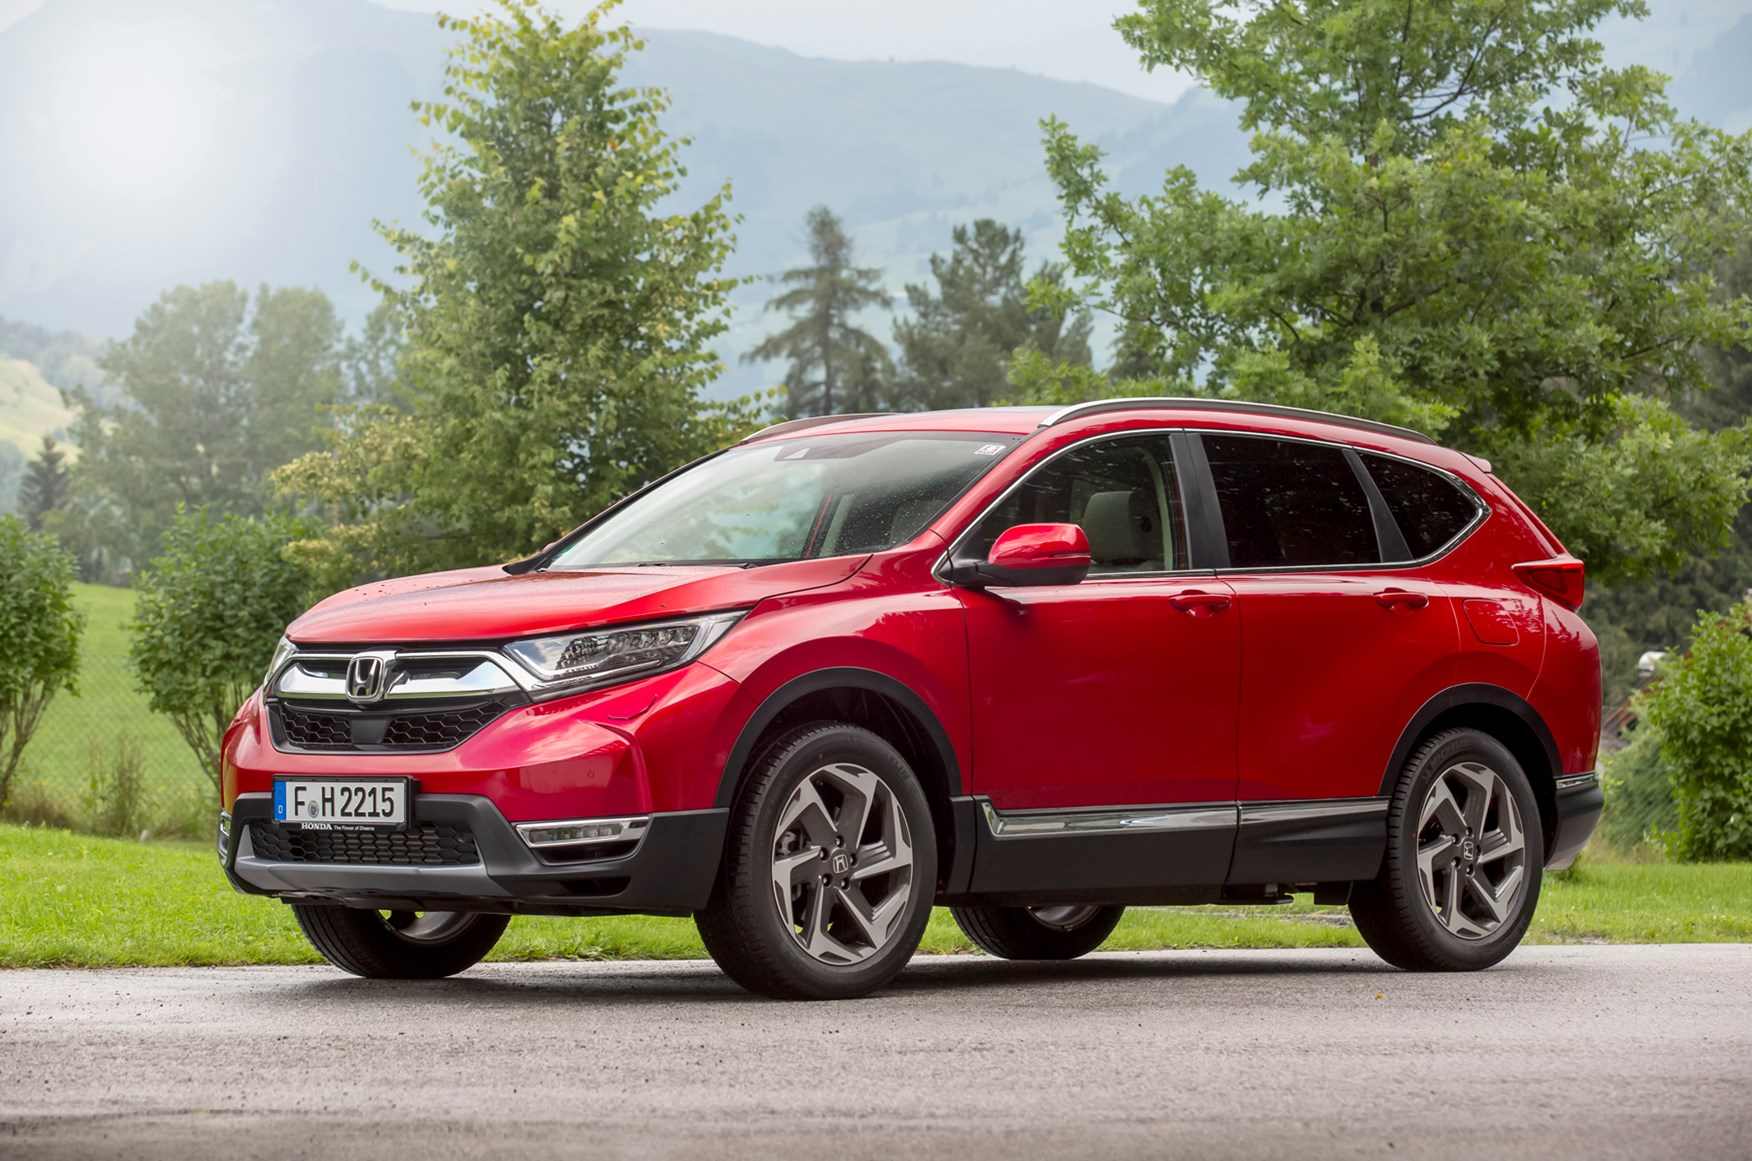 Honda CR-V (2019) Practicality, Boot Space & Dimensions